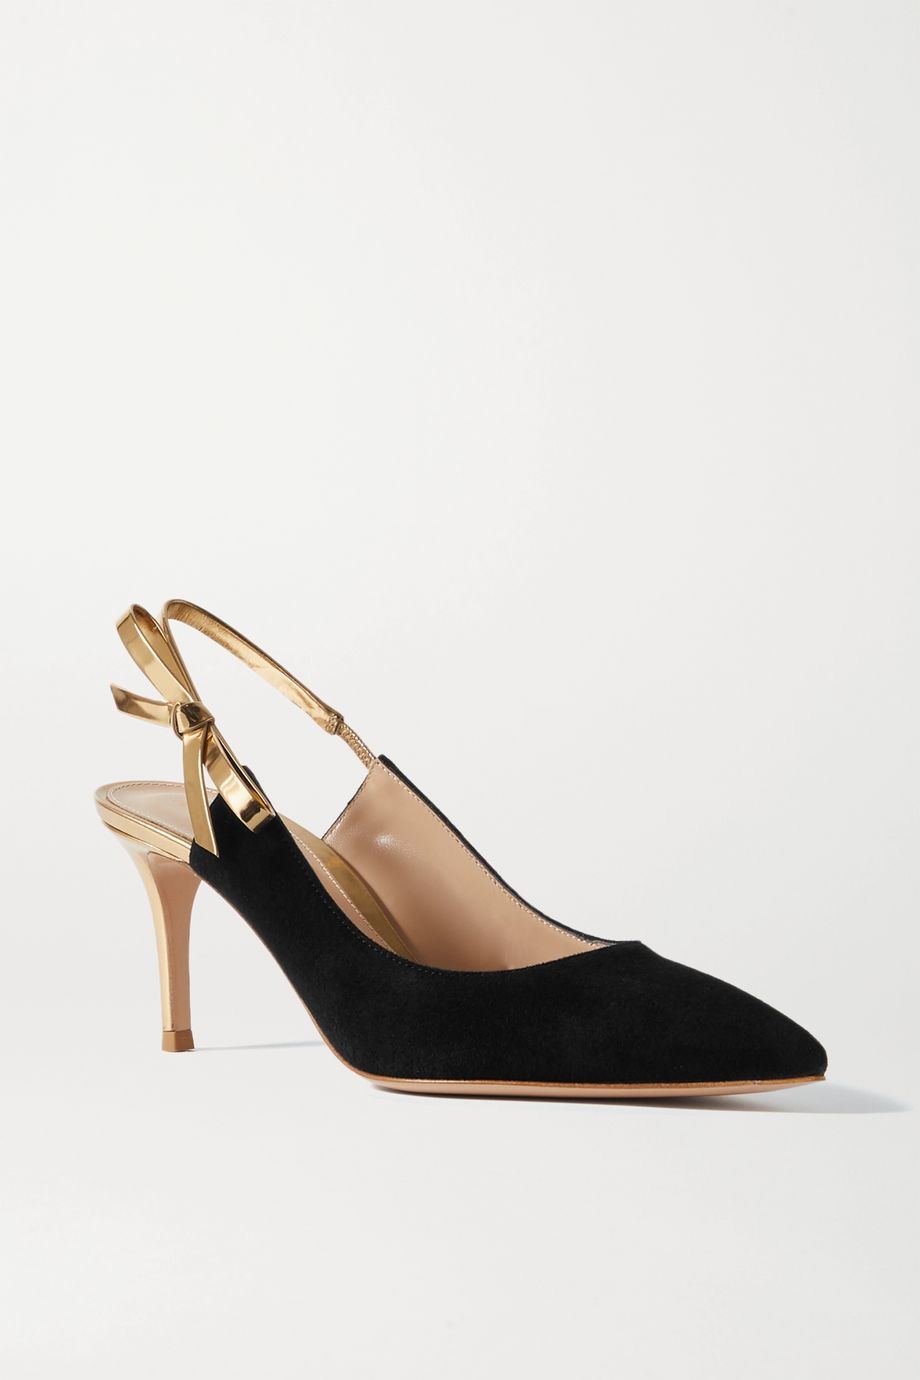 Gianvito Rossi 70 bow-embellished metallic leather and suede slingback pumps